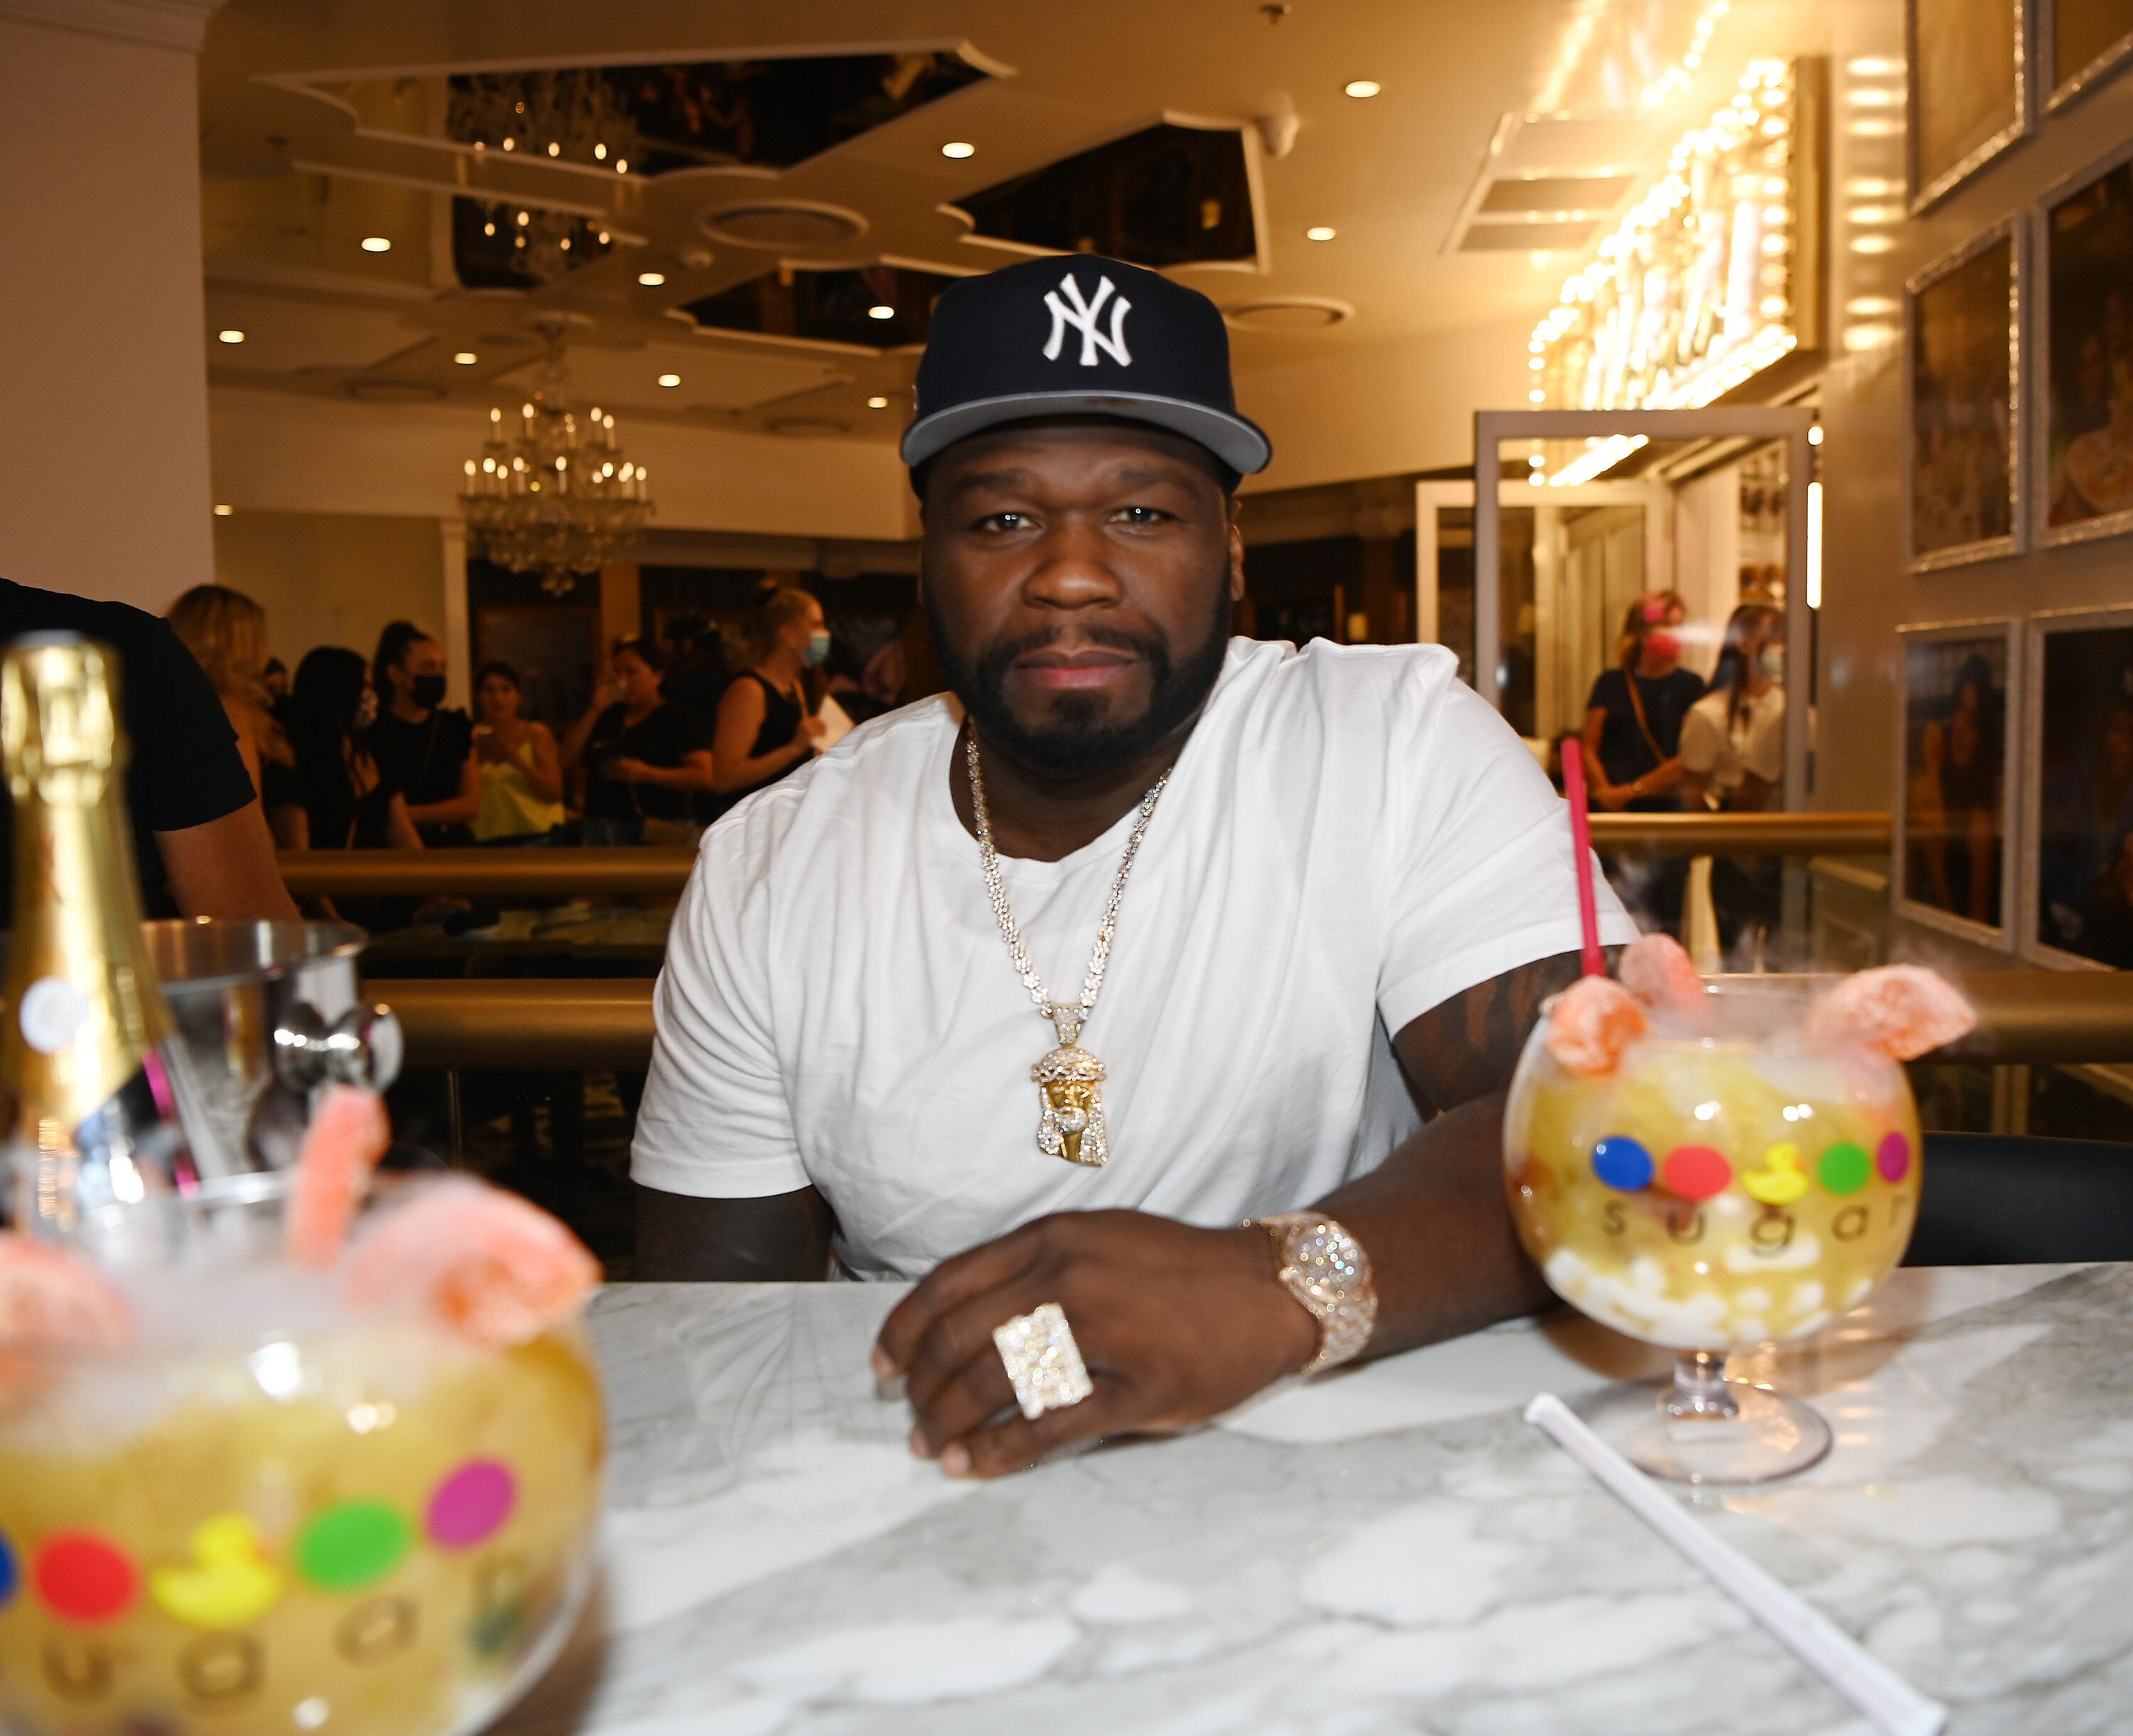 Rapper 50 Cent has drawn backlash for his comments about the death of actor Michael K. Williams.